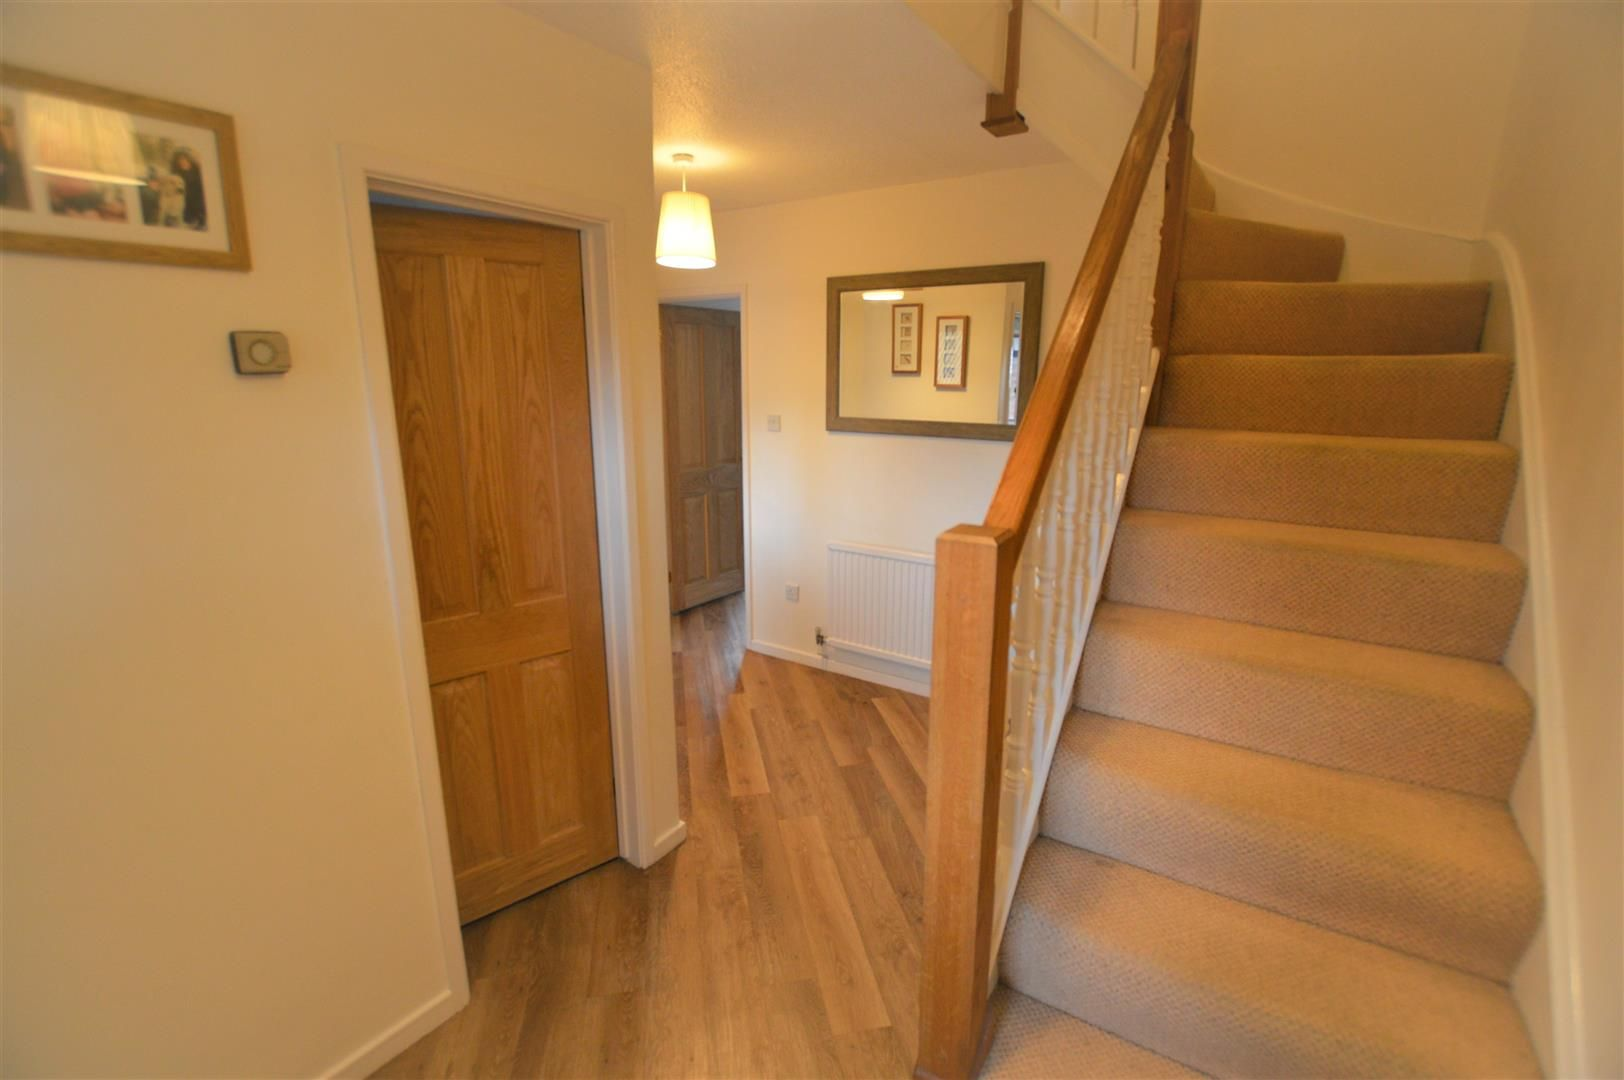 4 bed semi-detached for sale in Luston  - Property Image 4